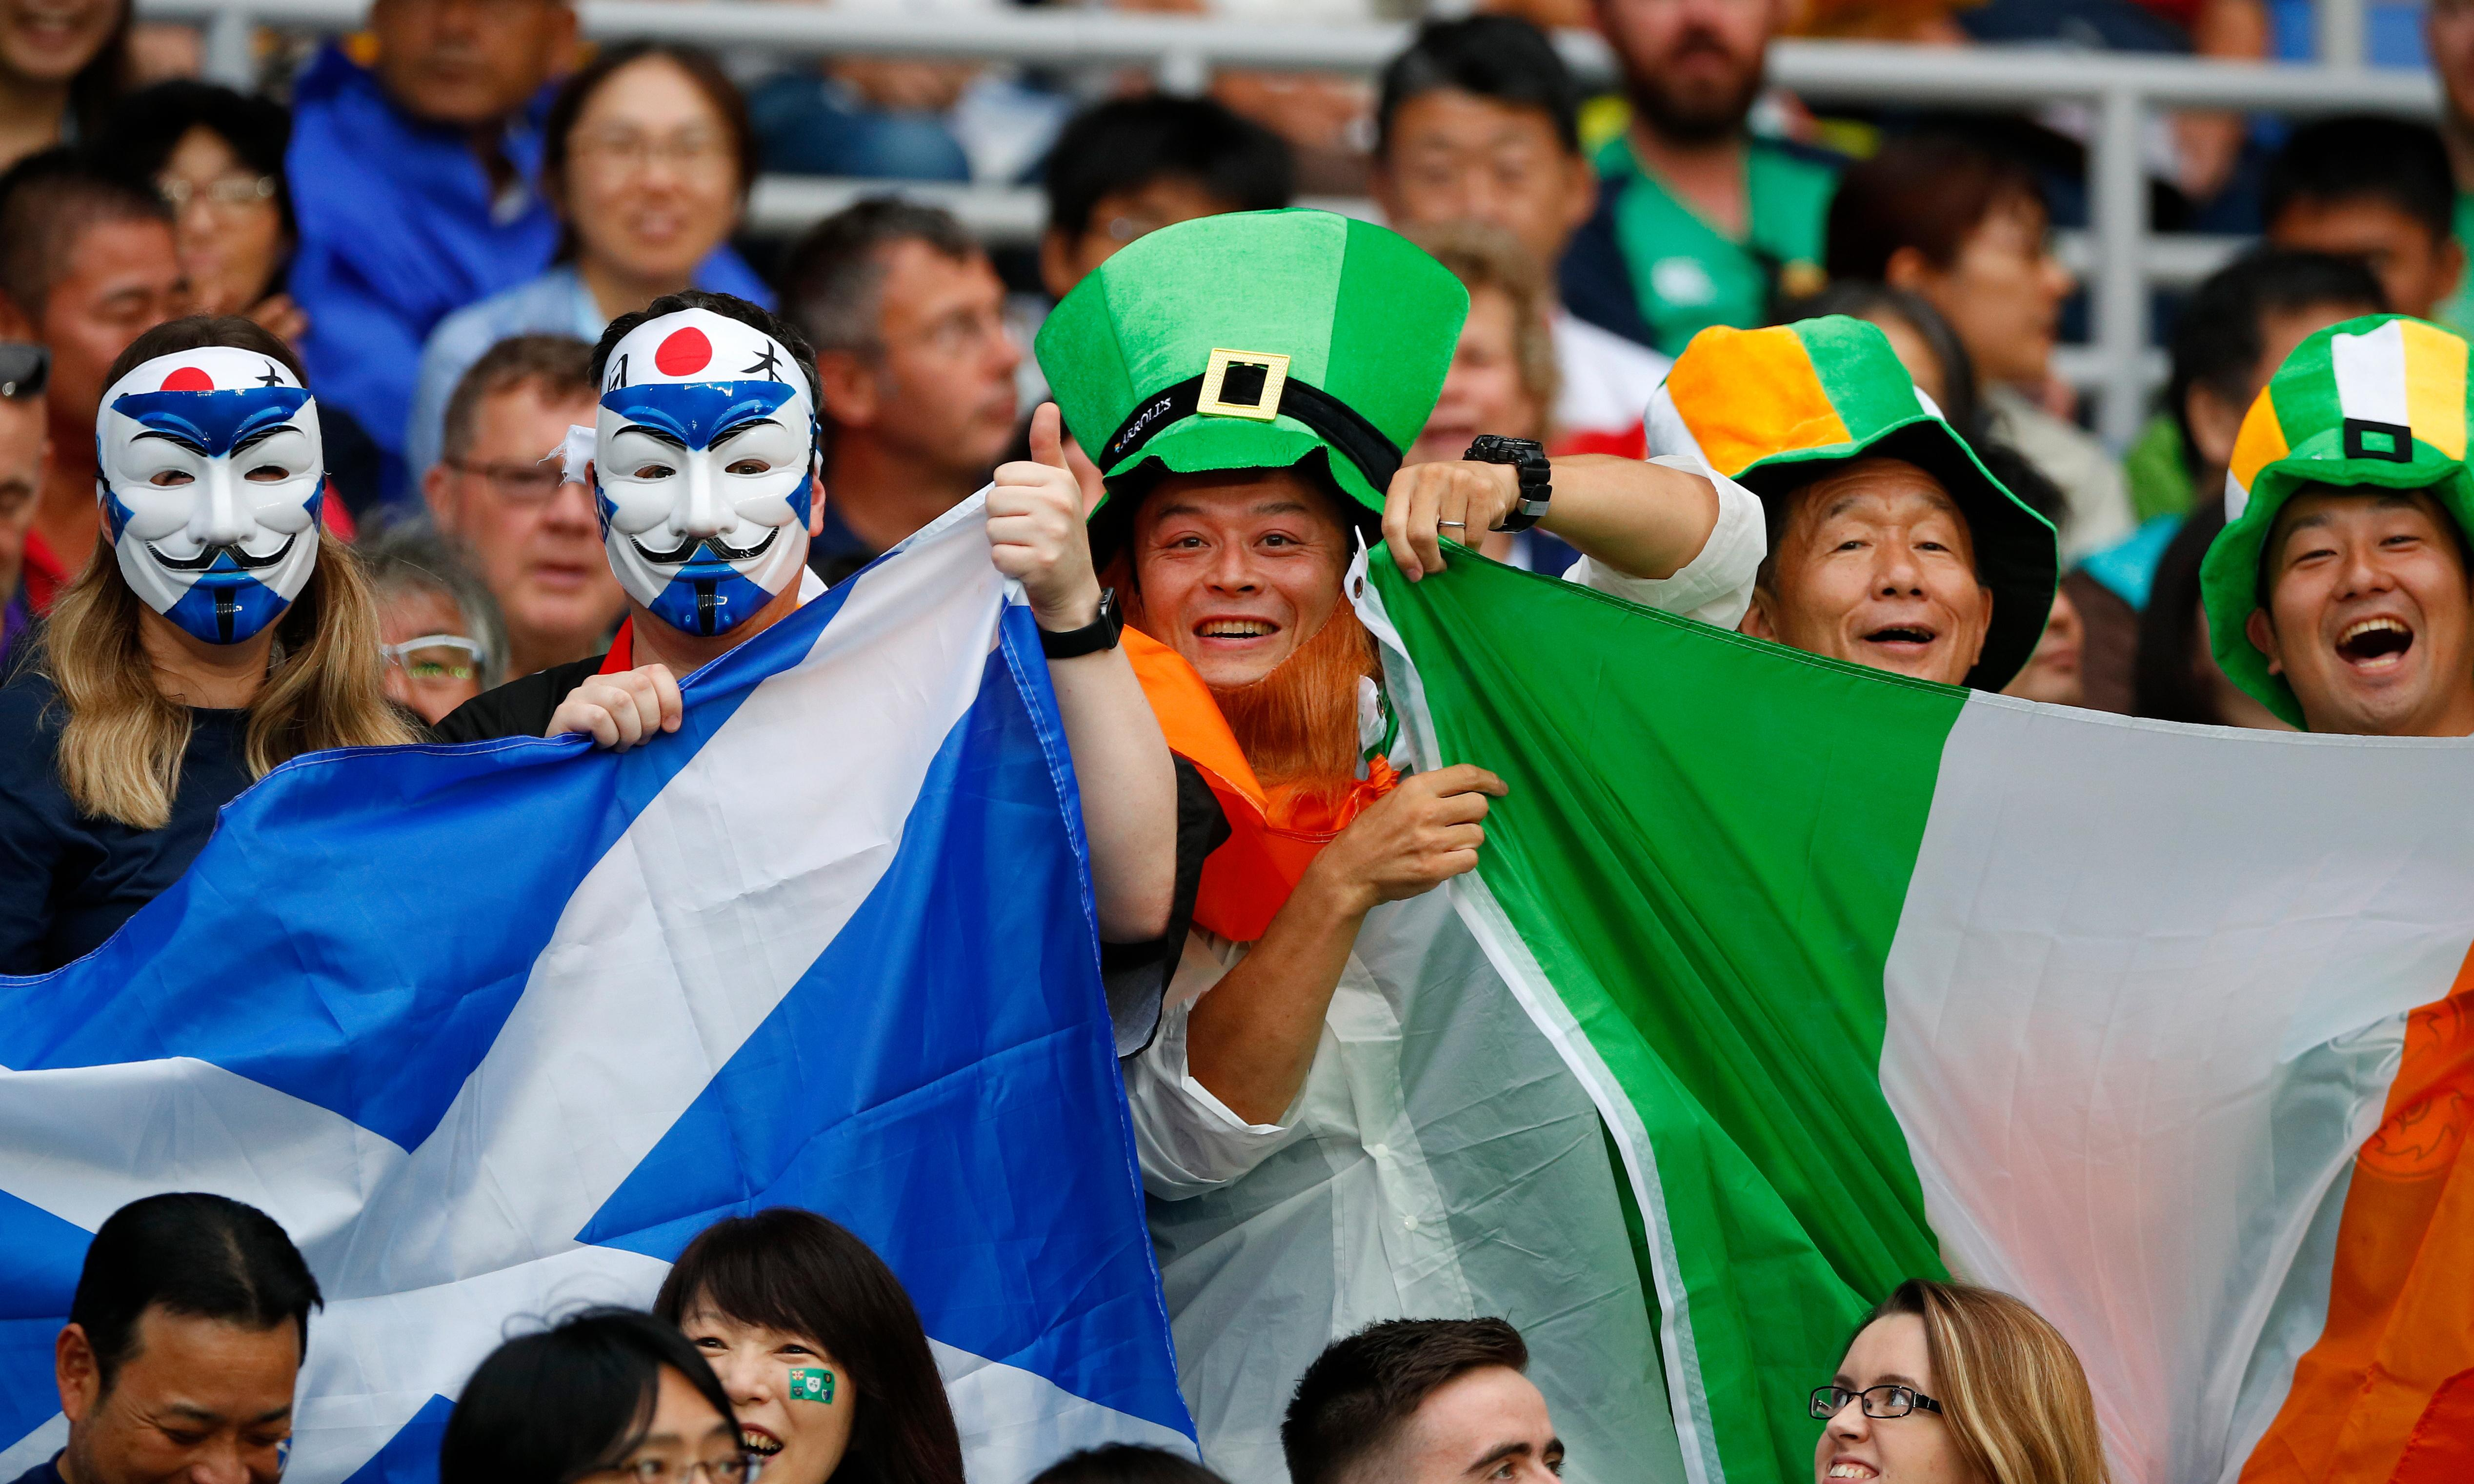 Dizzying, delightful and disorientating: the Rugby World Cup is up and running